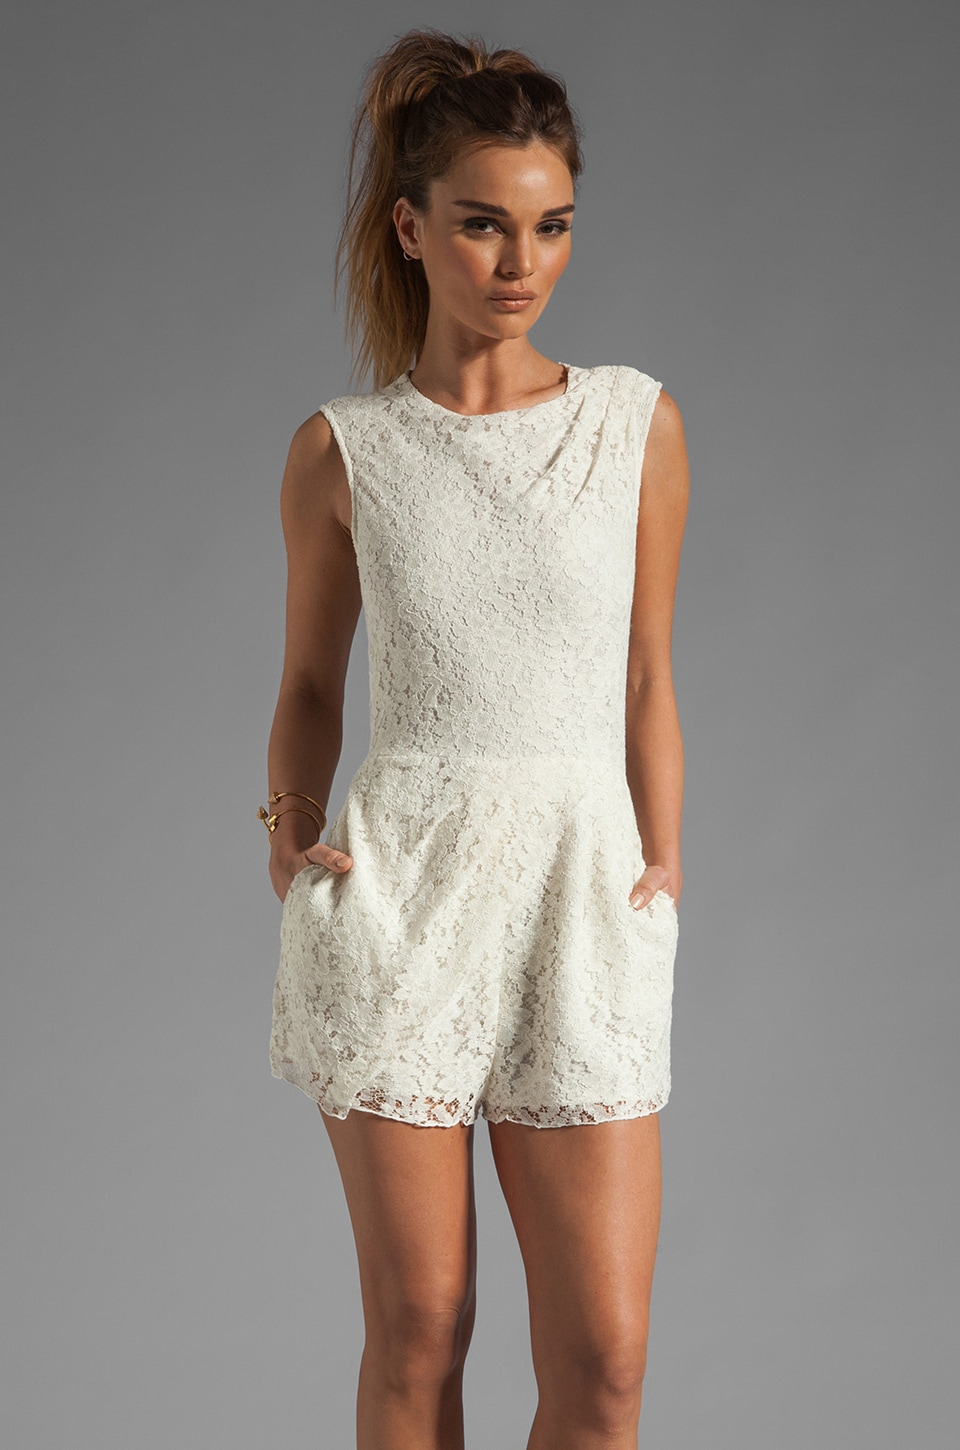 Dolce Vita Jaida Raised Lace Romper in Cream